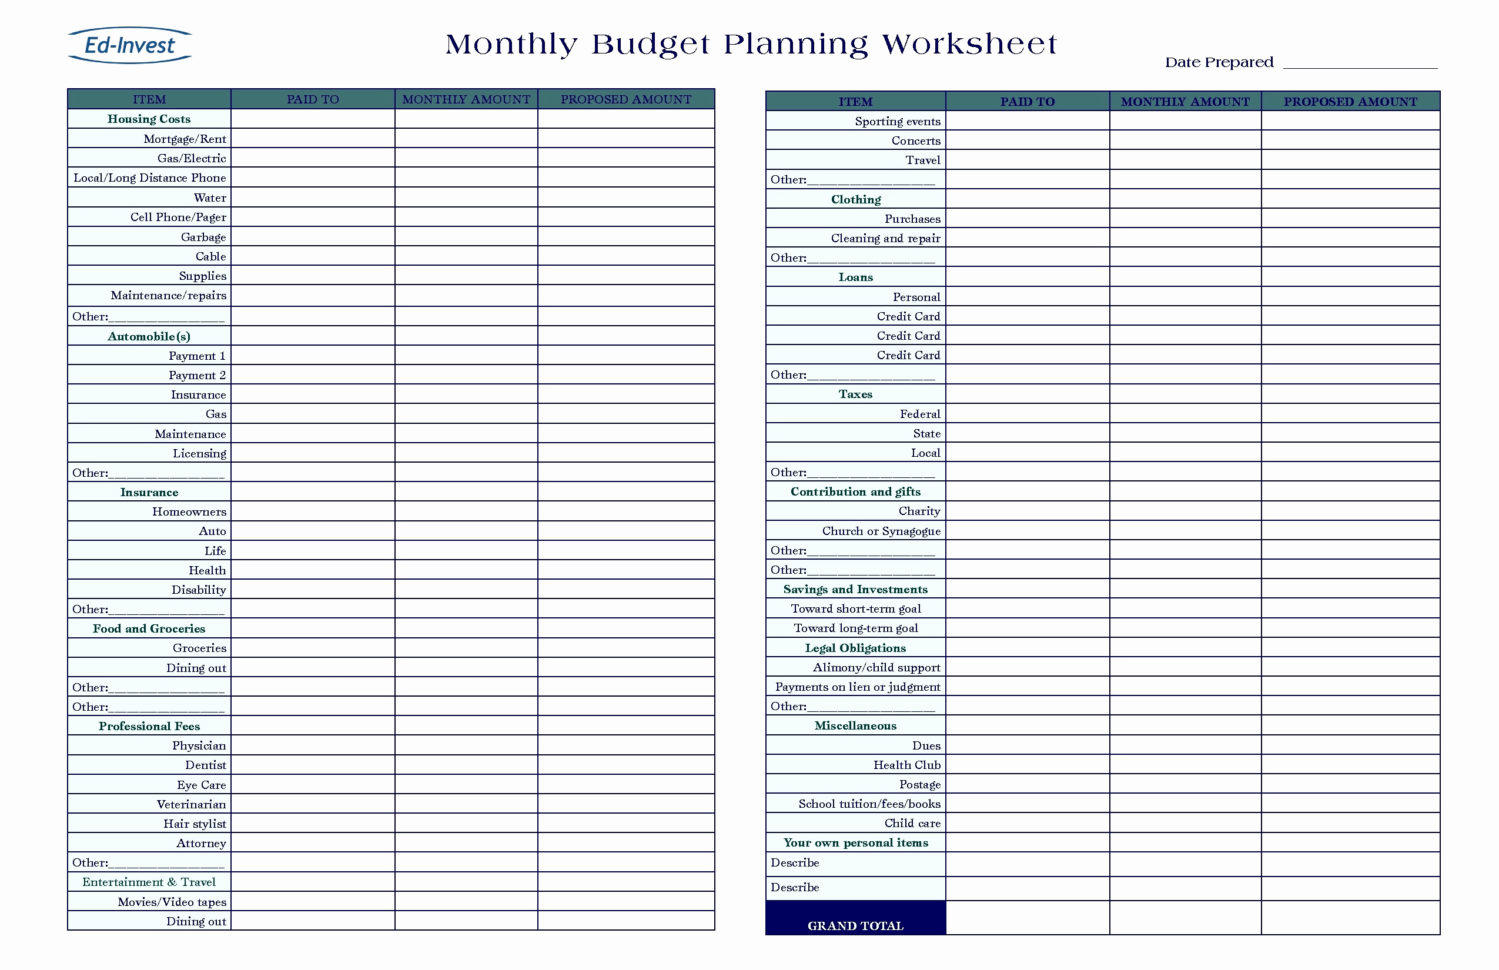 Rental Property Expenses Spreadsheet Template Beautiful Rental And Self Employed Expenses Spreadsheet Template